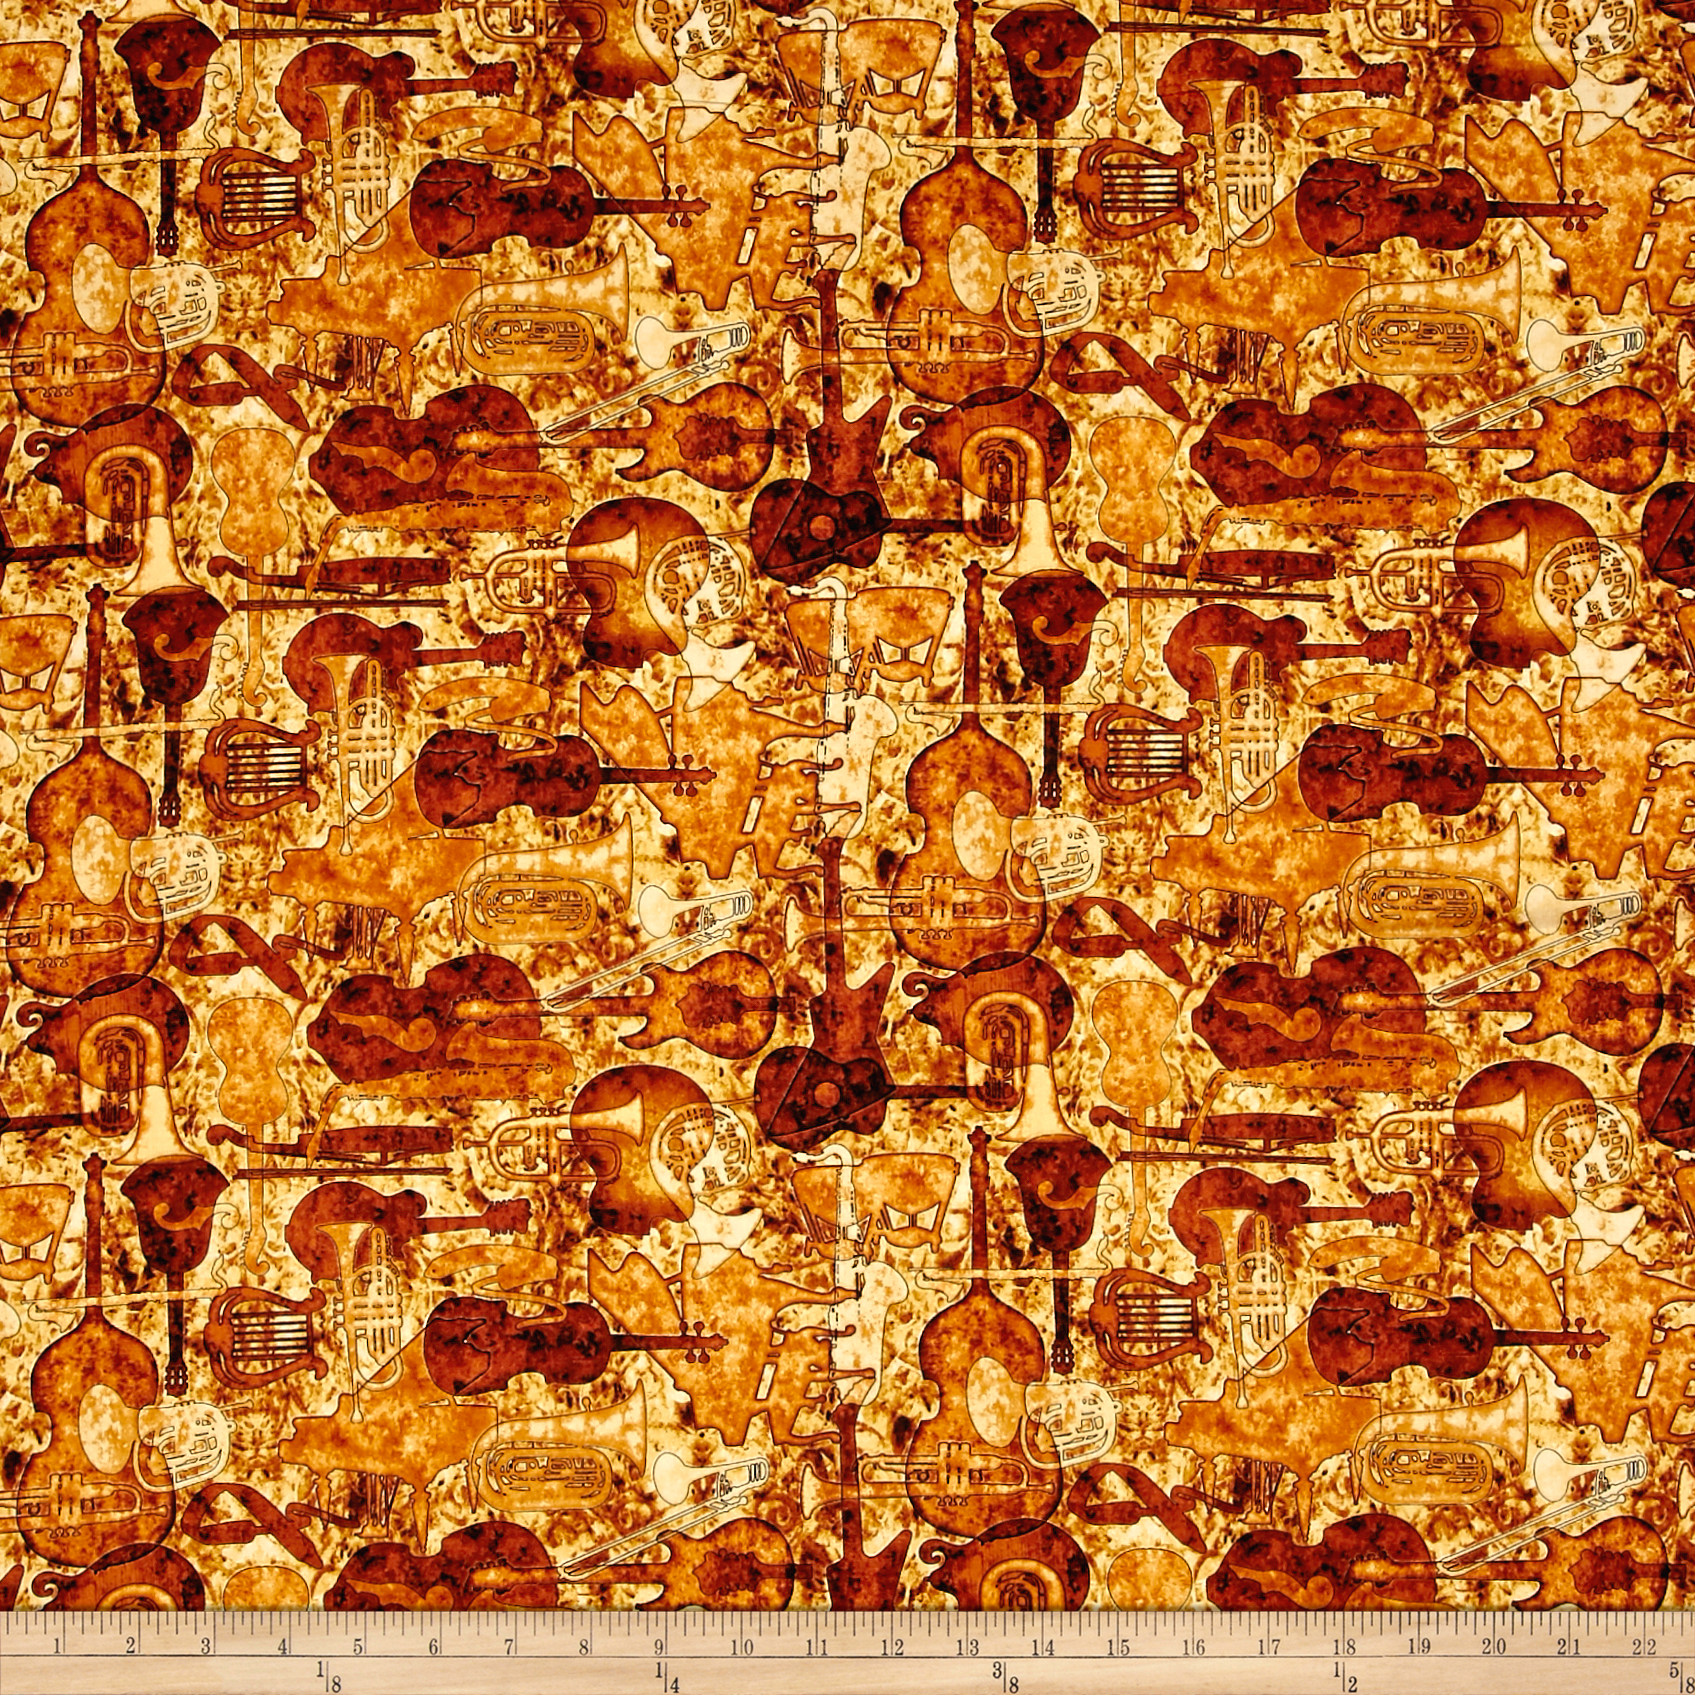 Encore Instruments Silhouettes Rust Fabric by Quilting Treasures in USA